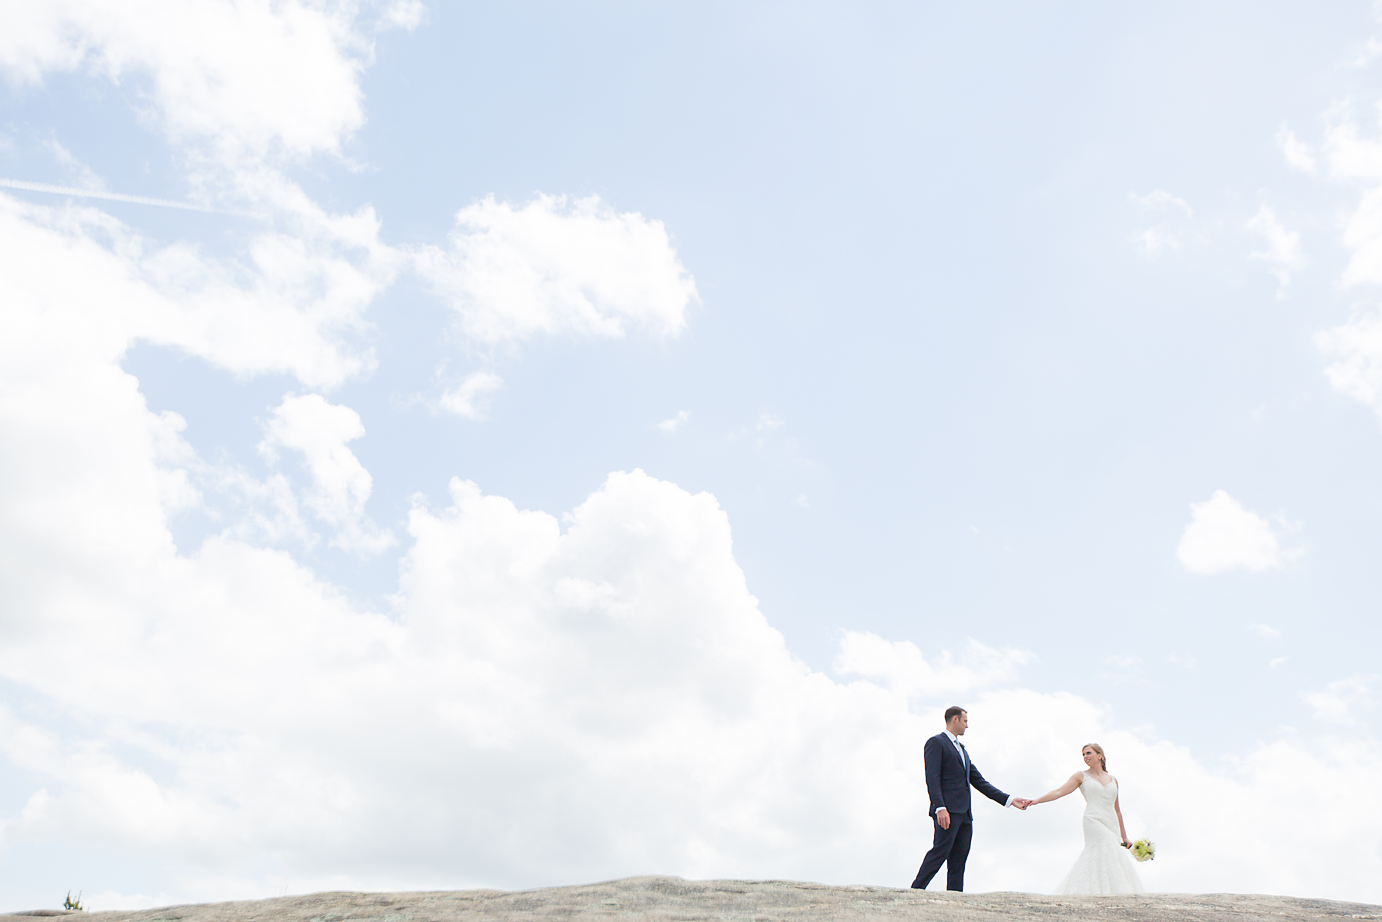 Dallas Wedding Photographer Glassy Mountain Chapel Greenville South Carolina scottish wedding bride and groom romantic walking in clouds kate marie portraiture.png